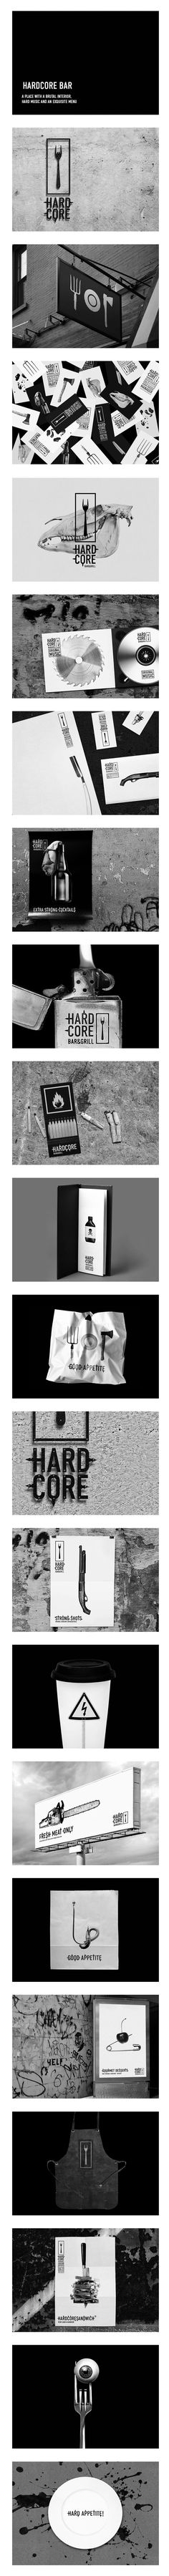 Hardcore bar a little strange but I like it #identity #packaging #branding PD